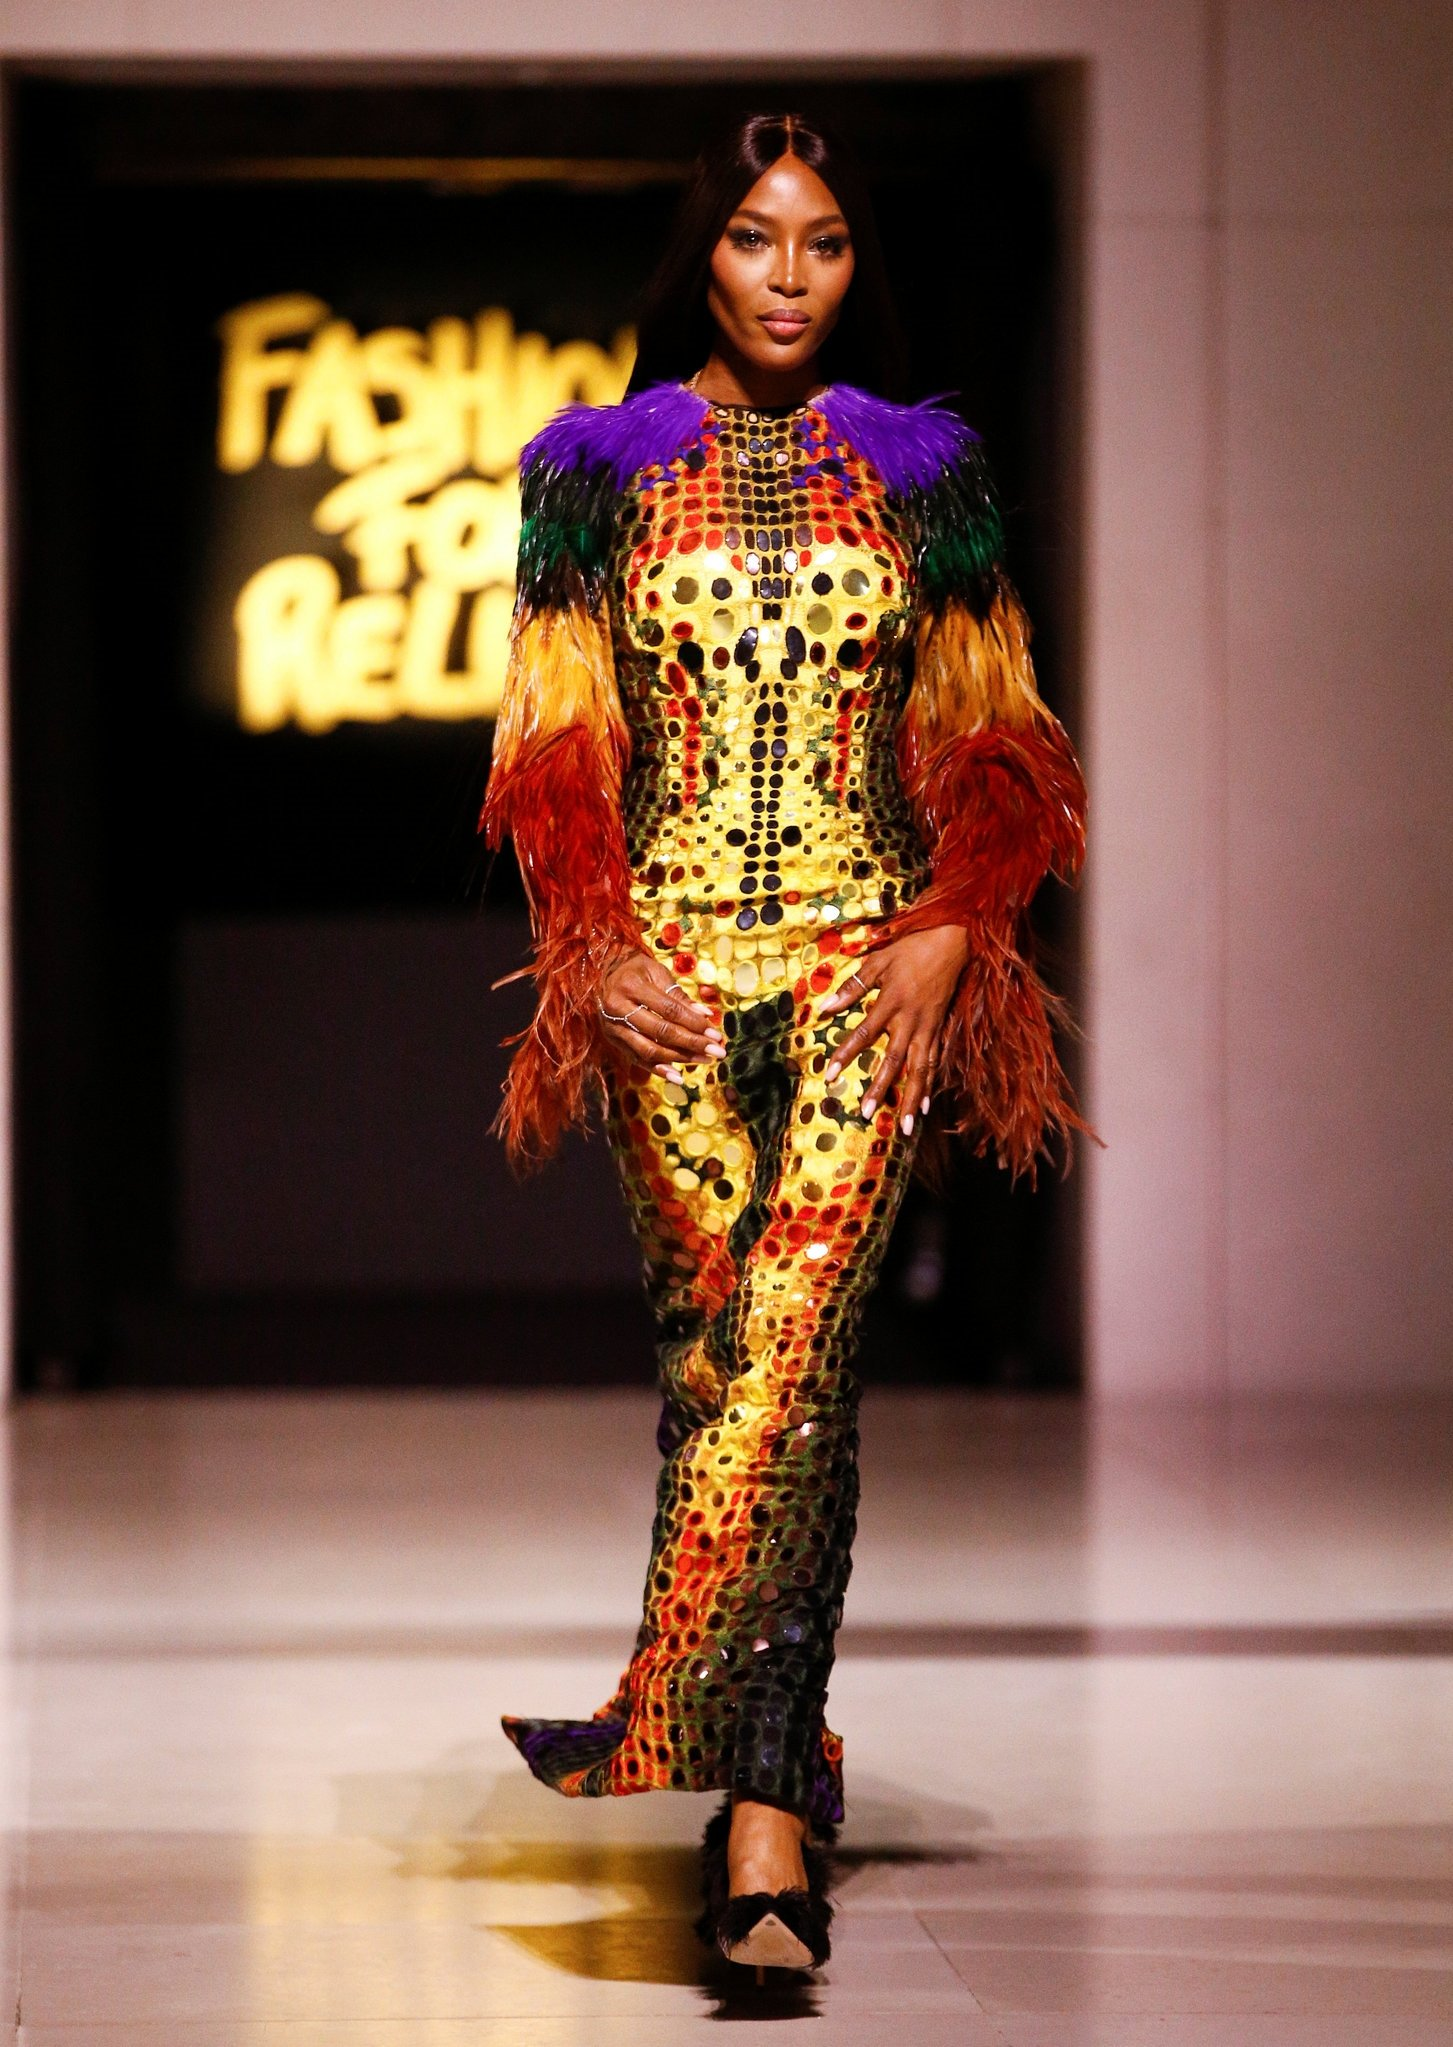 Naomi Campbell Modeling Images - Naomi Campbell Modeling Images